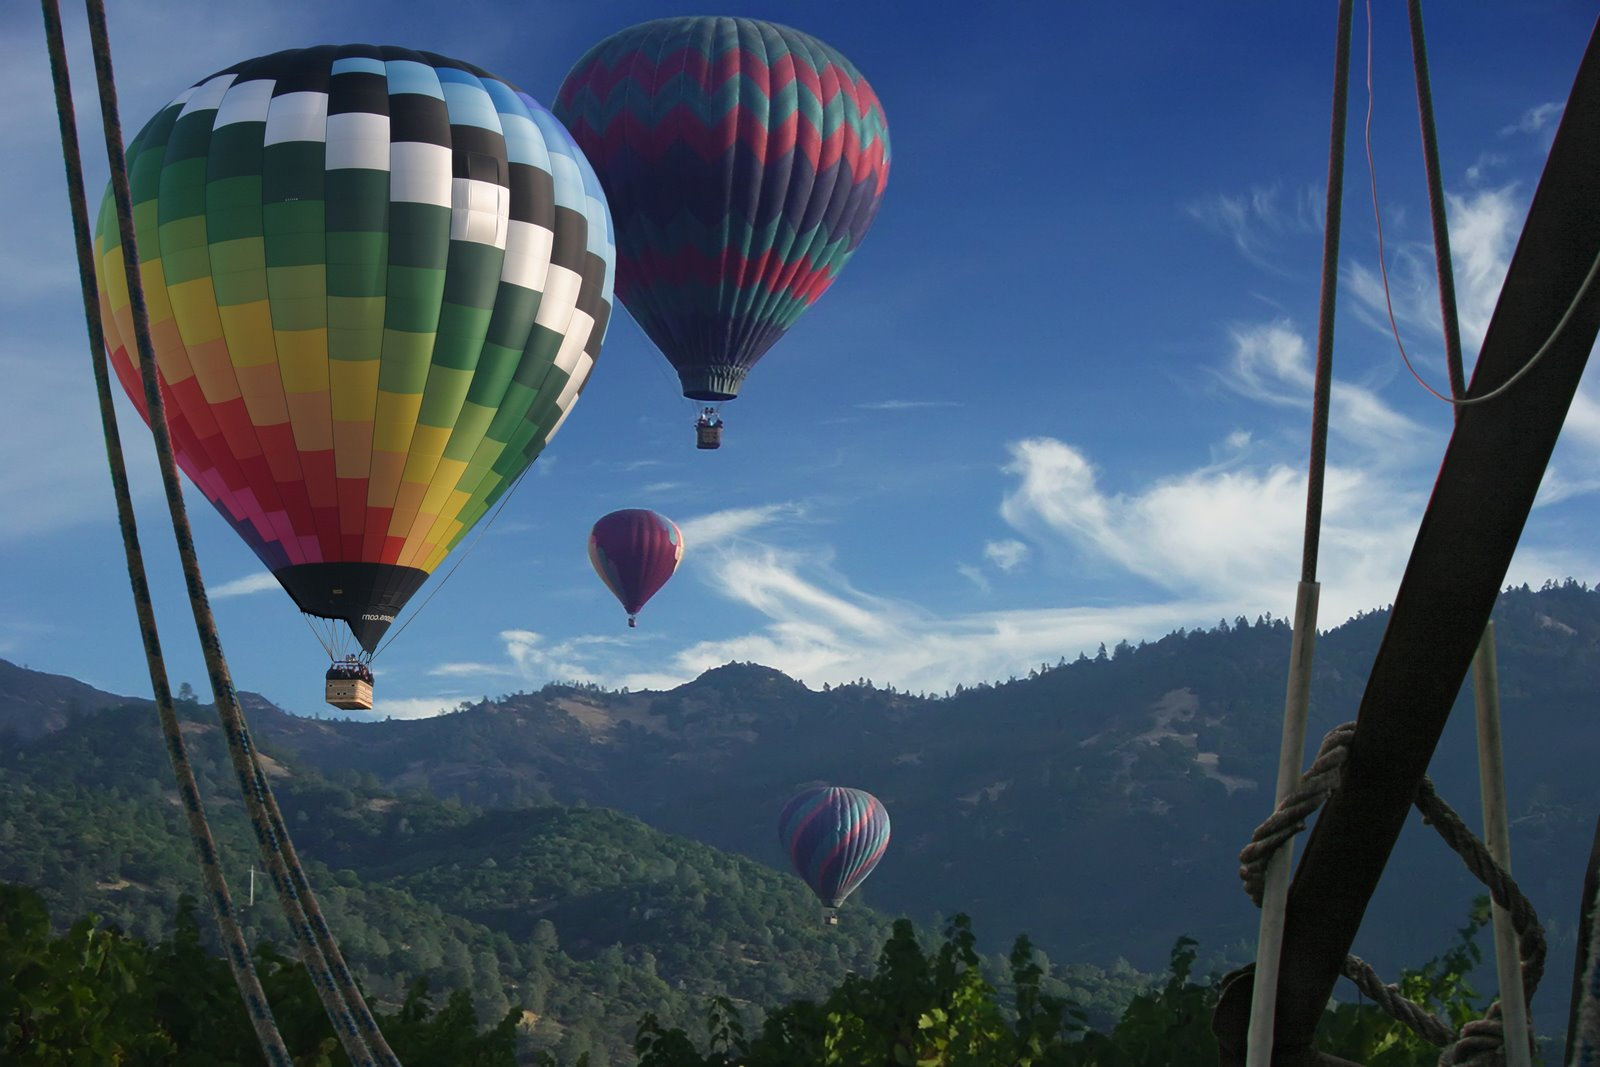 Napa Sightseeing Tour Company, Calistoga Balloons Announces New